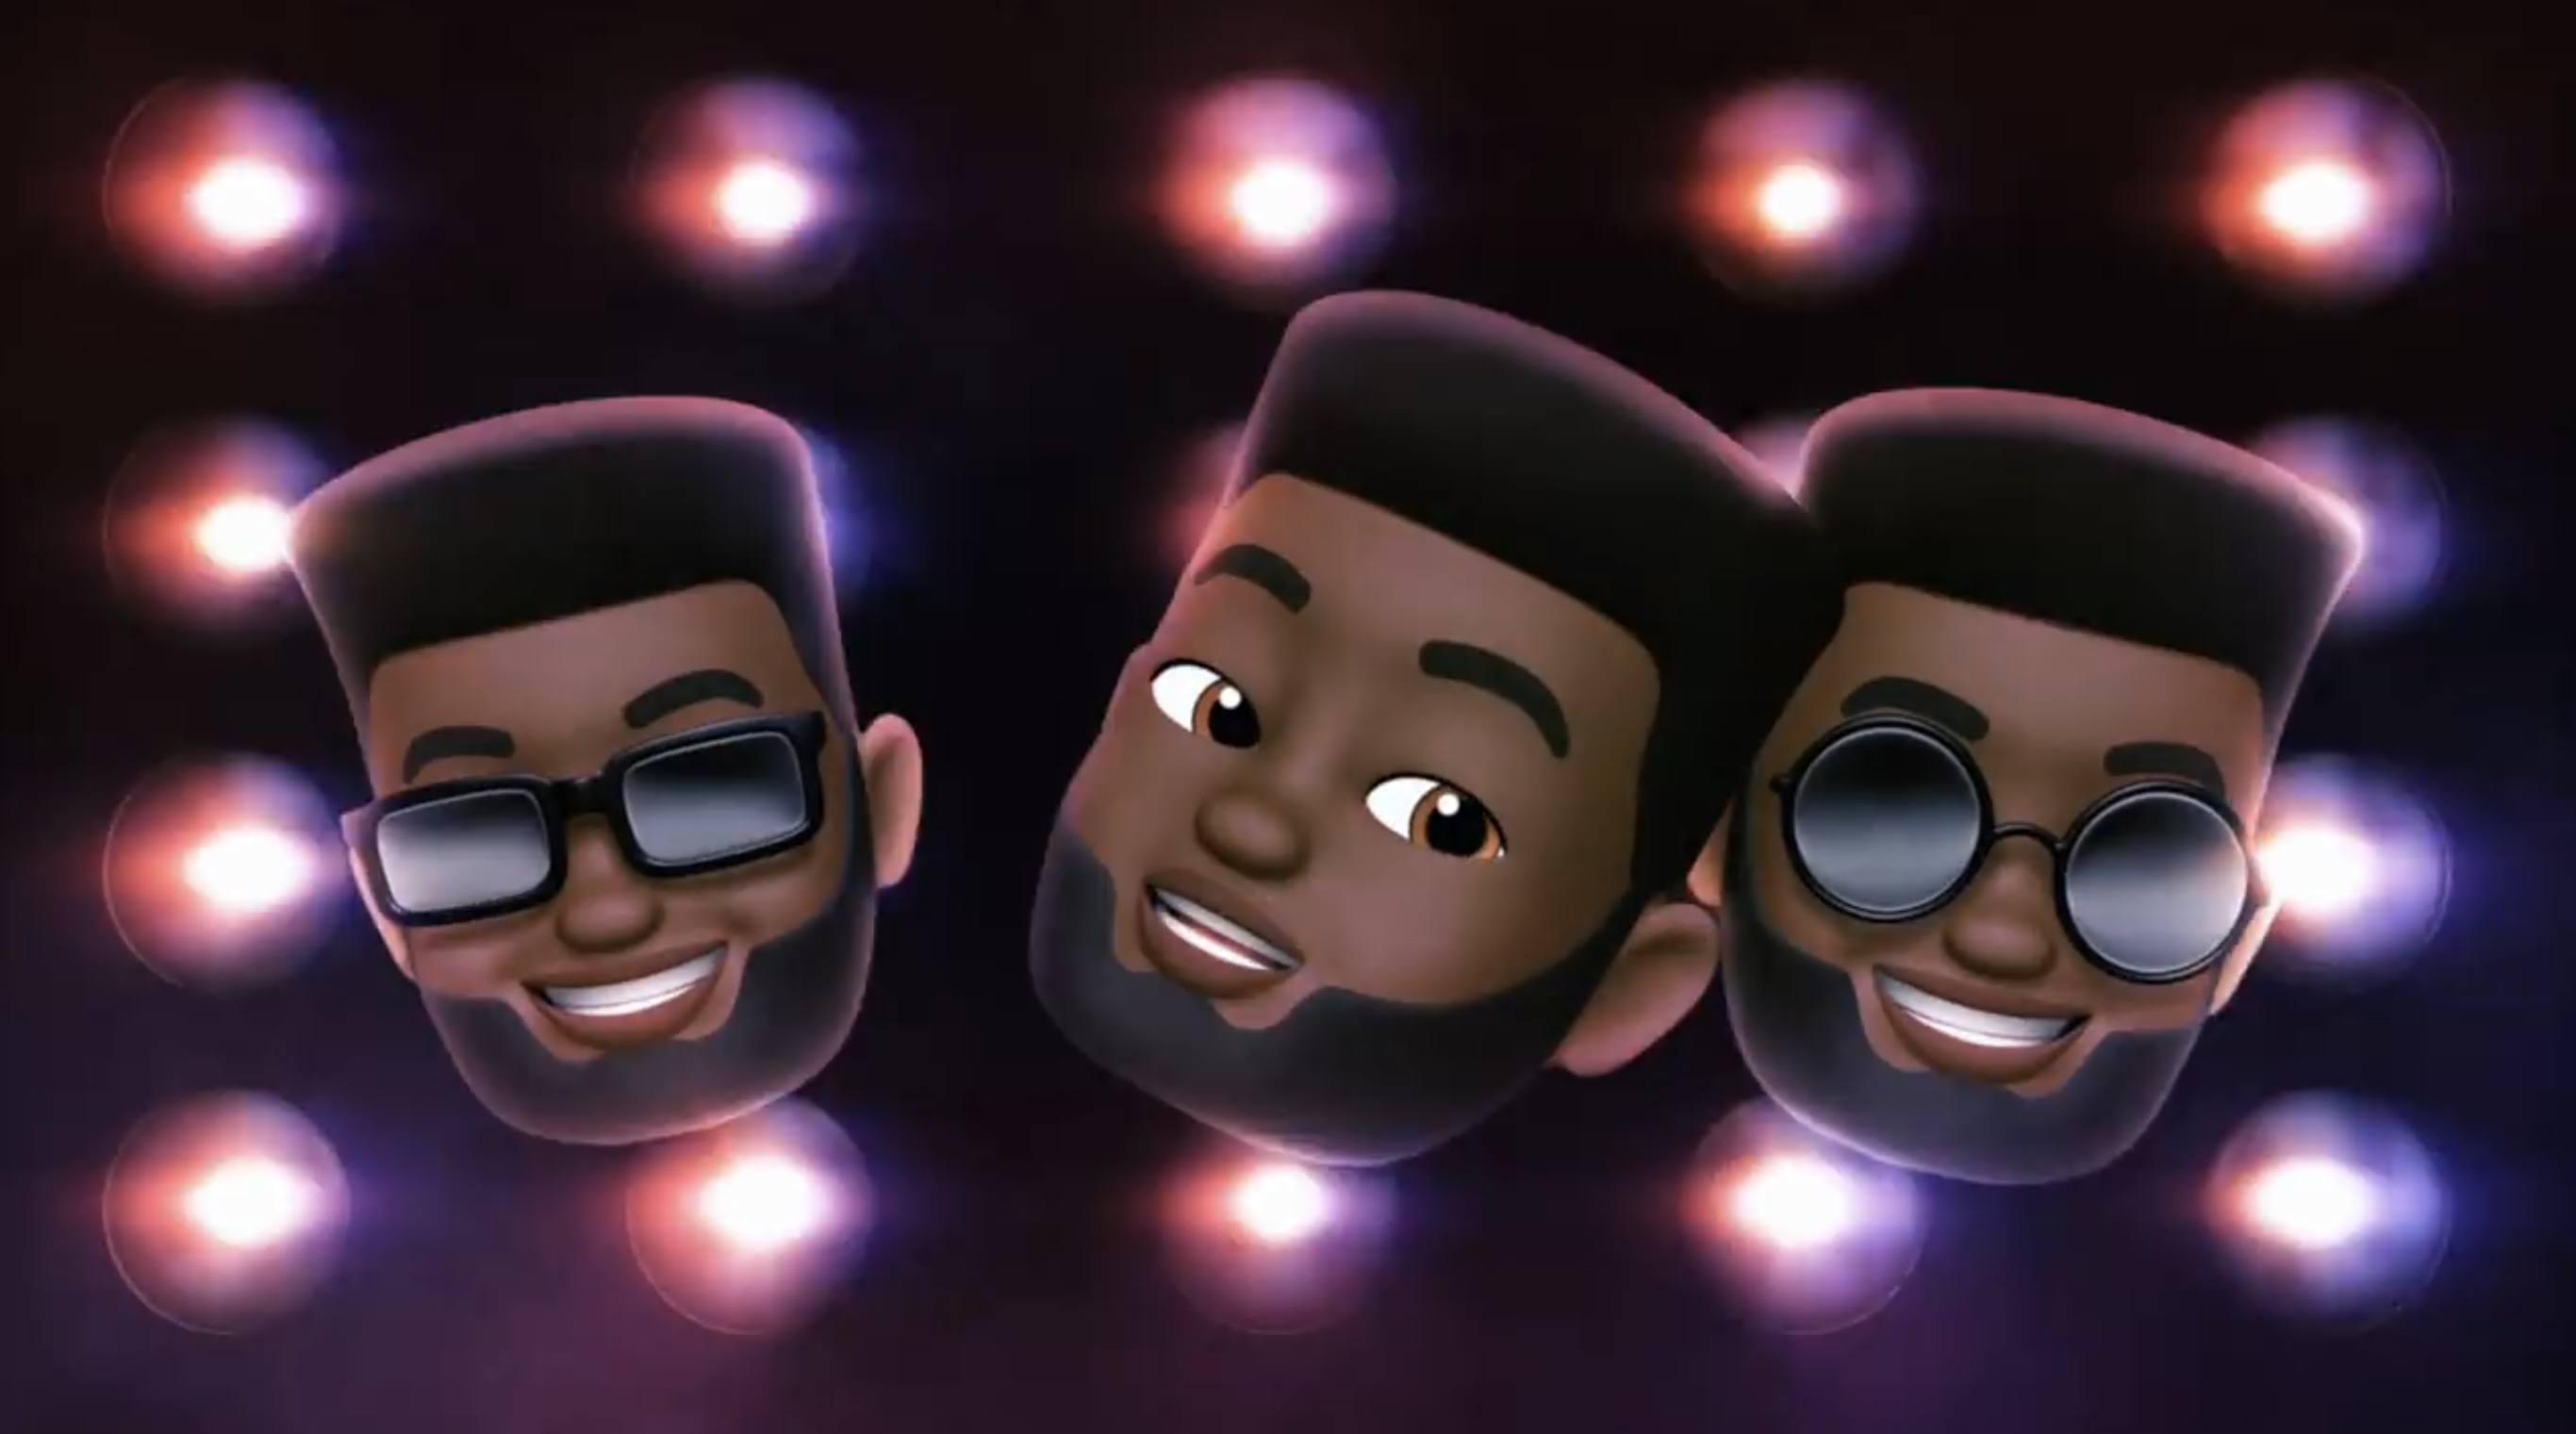 Apple Shares Music Ads For Grammys Featuring Artists As Memoji